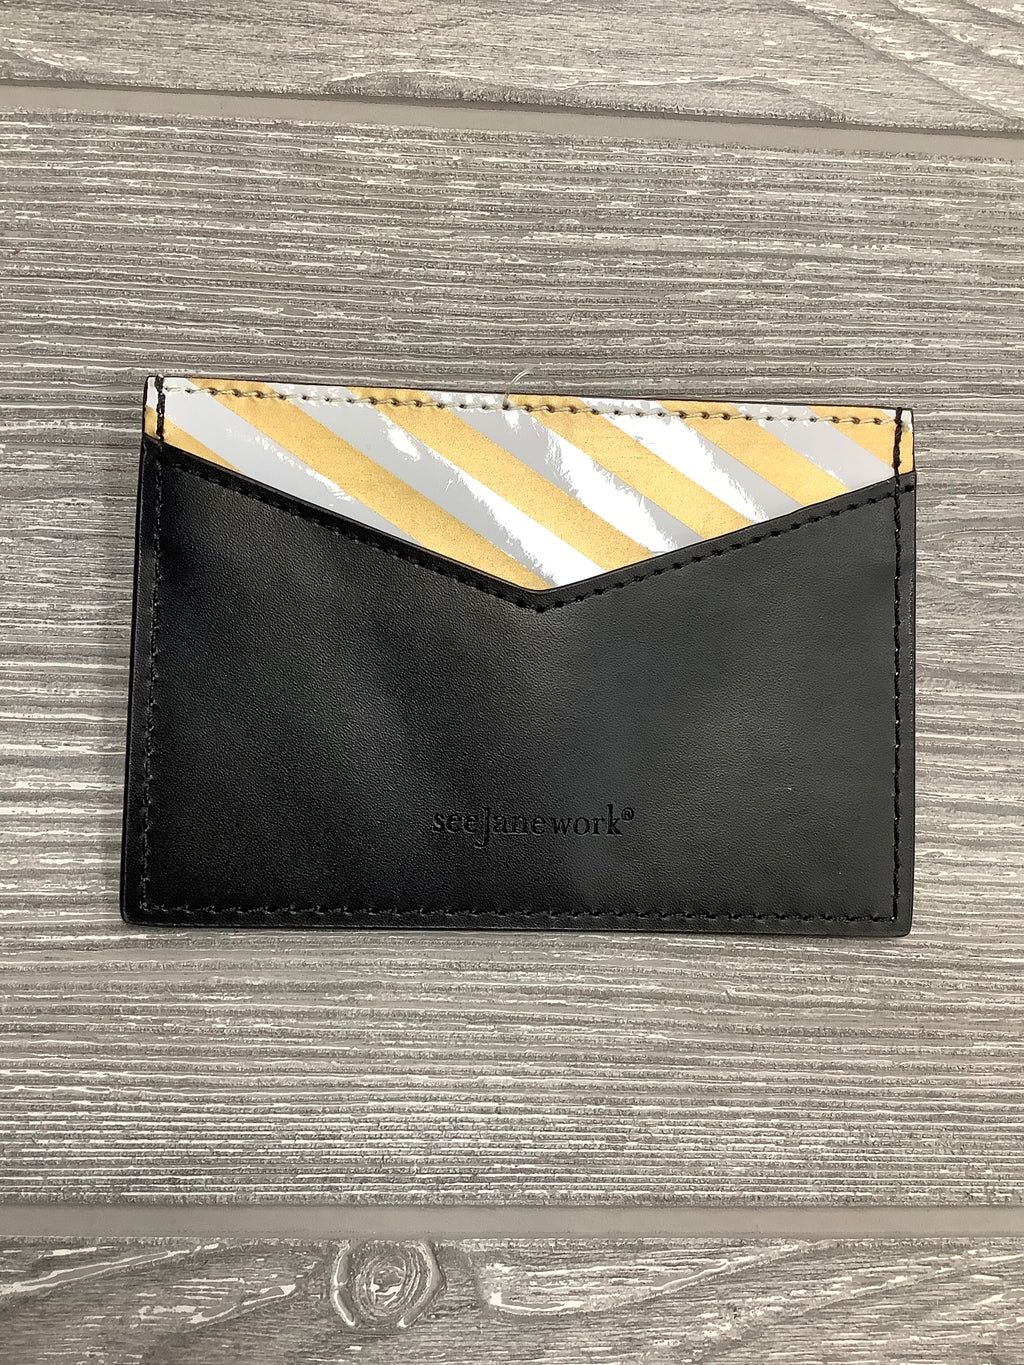 WALLET SIZE S BY SEE JANE WORK